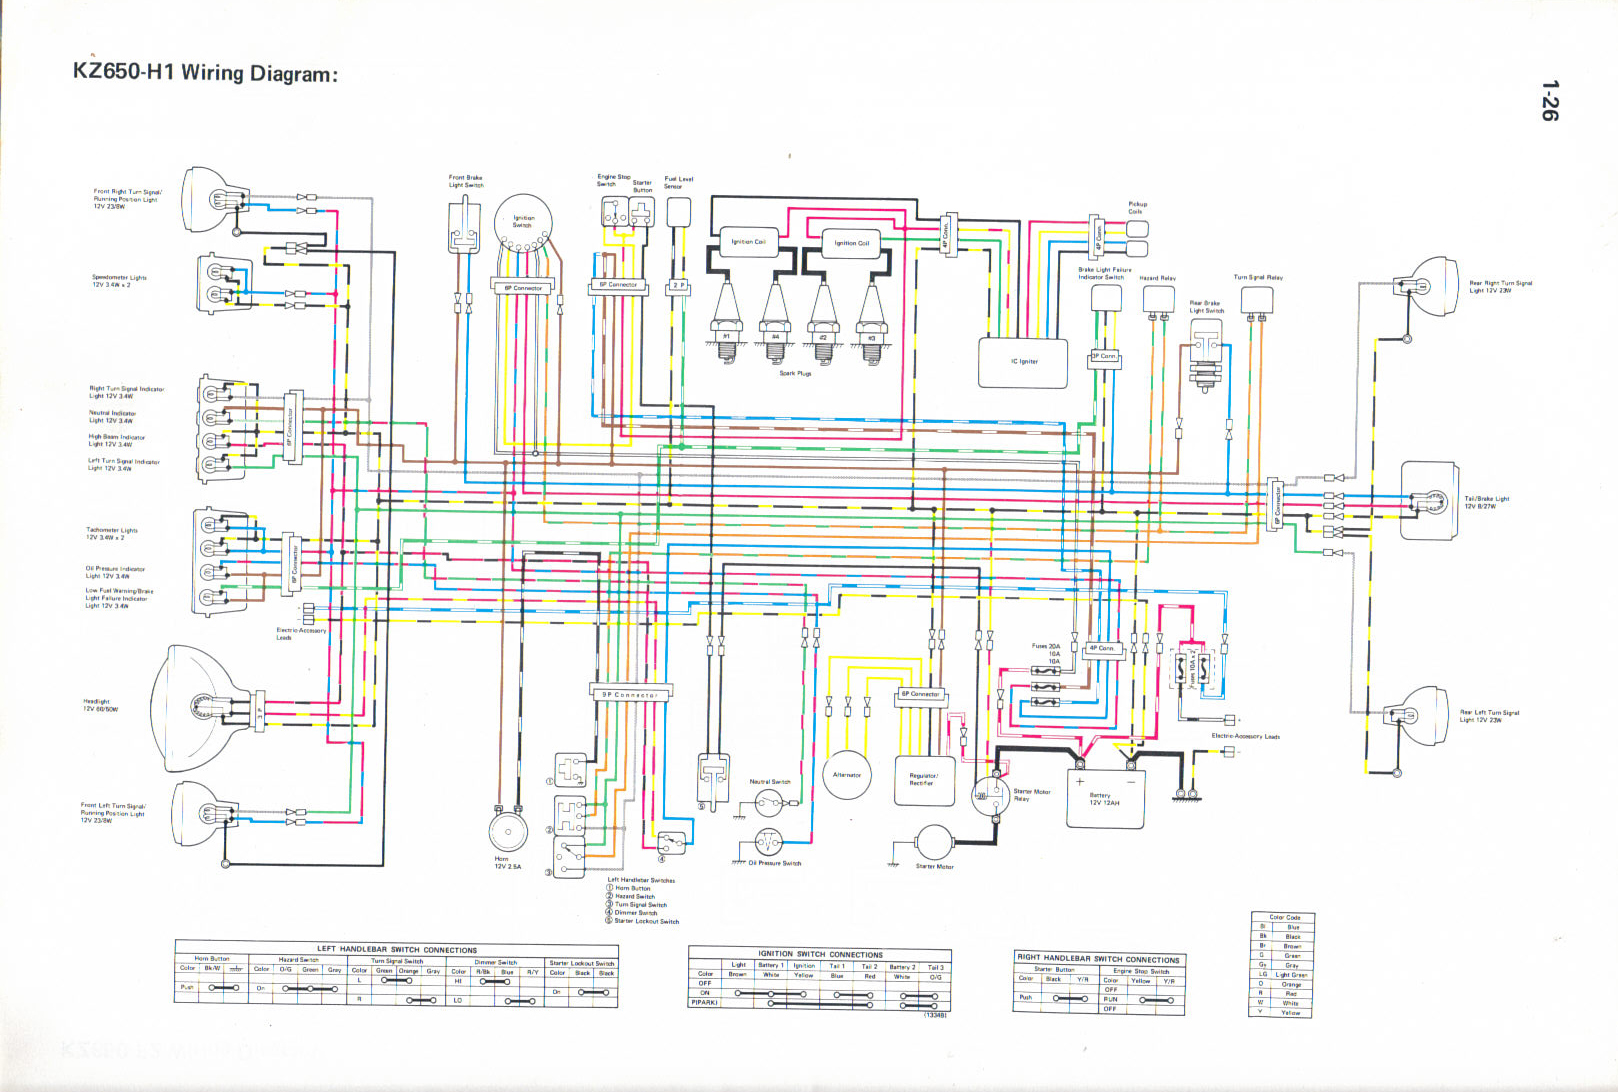 KZ650 H1 kz650 info wiring diagrams 2009 kawasaki ninja 250r wiring diagram at alyssarenee.co